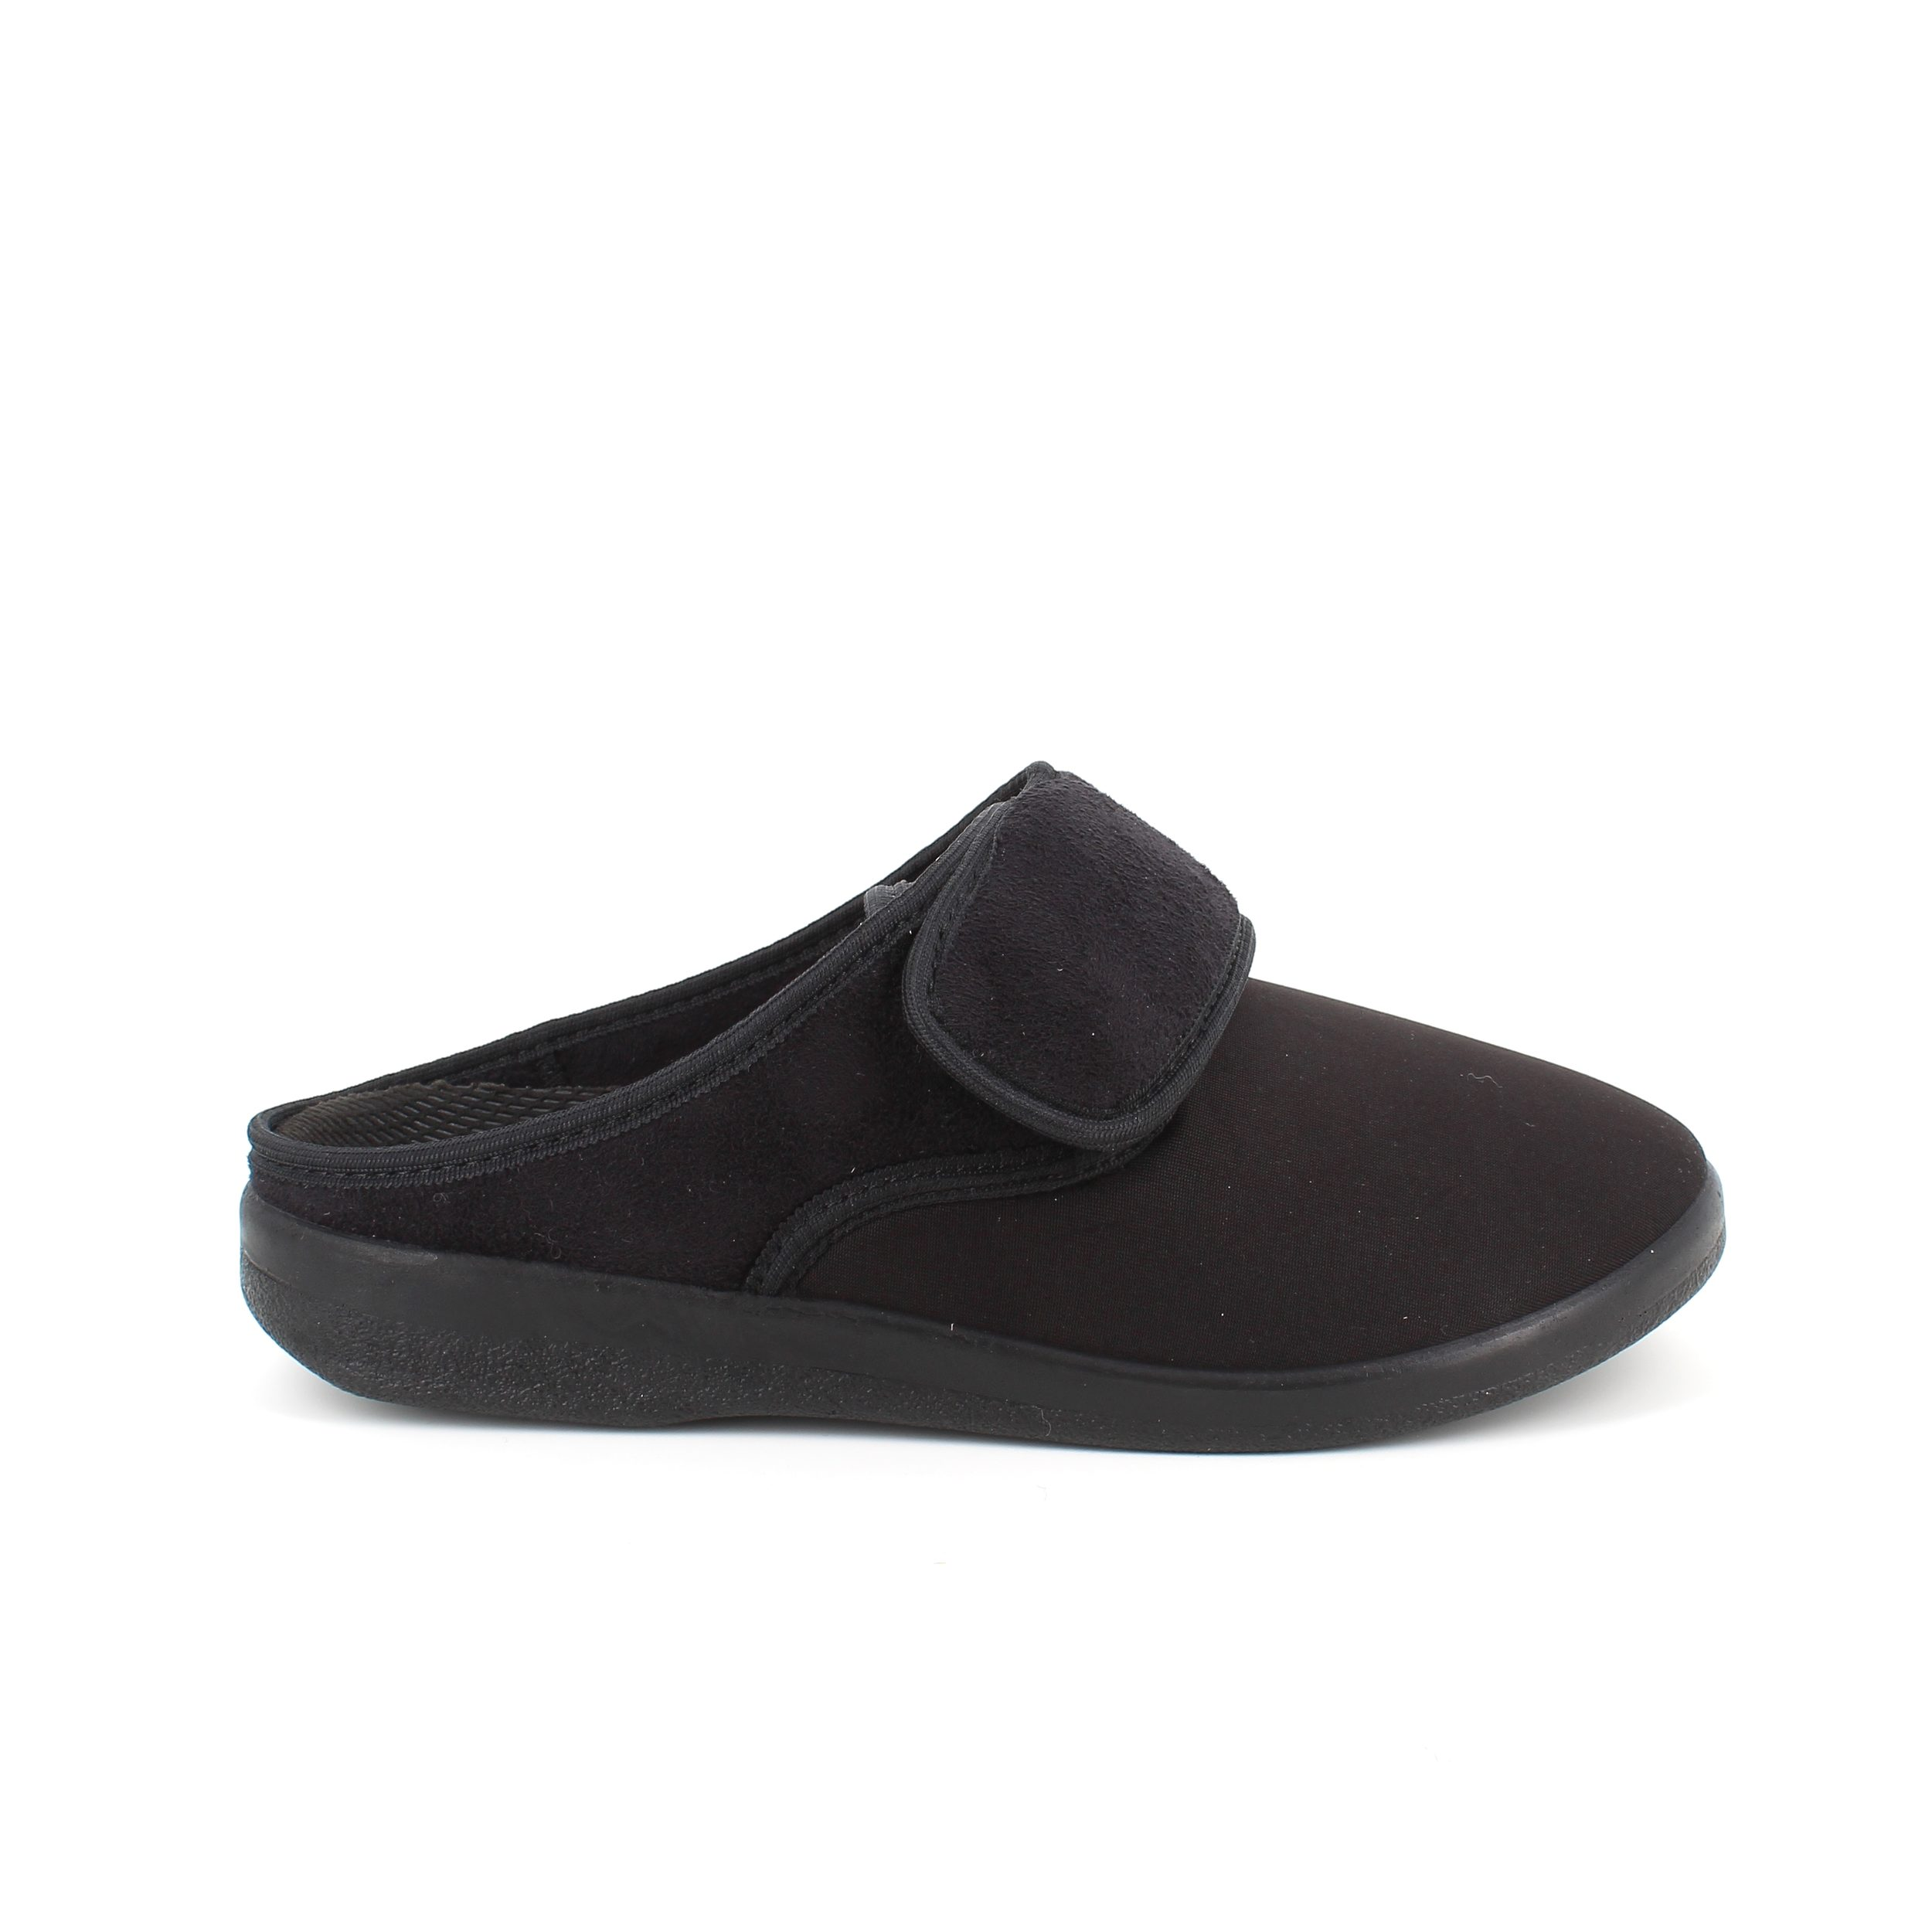 Image of   Bred sko fra OrtoMed slip in model med velcro omkring vristen - 41